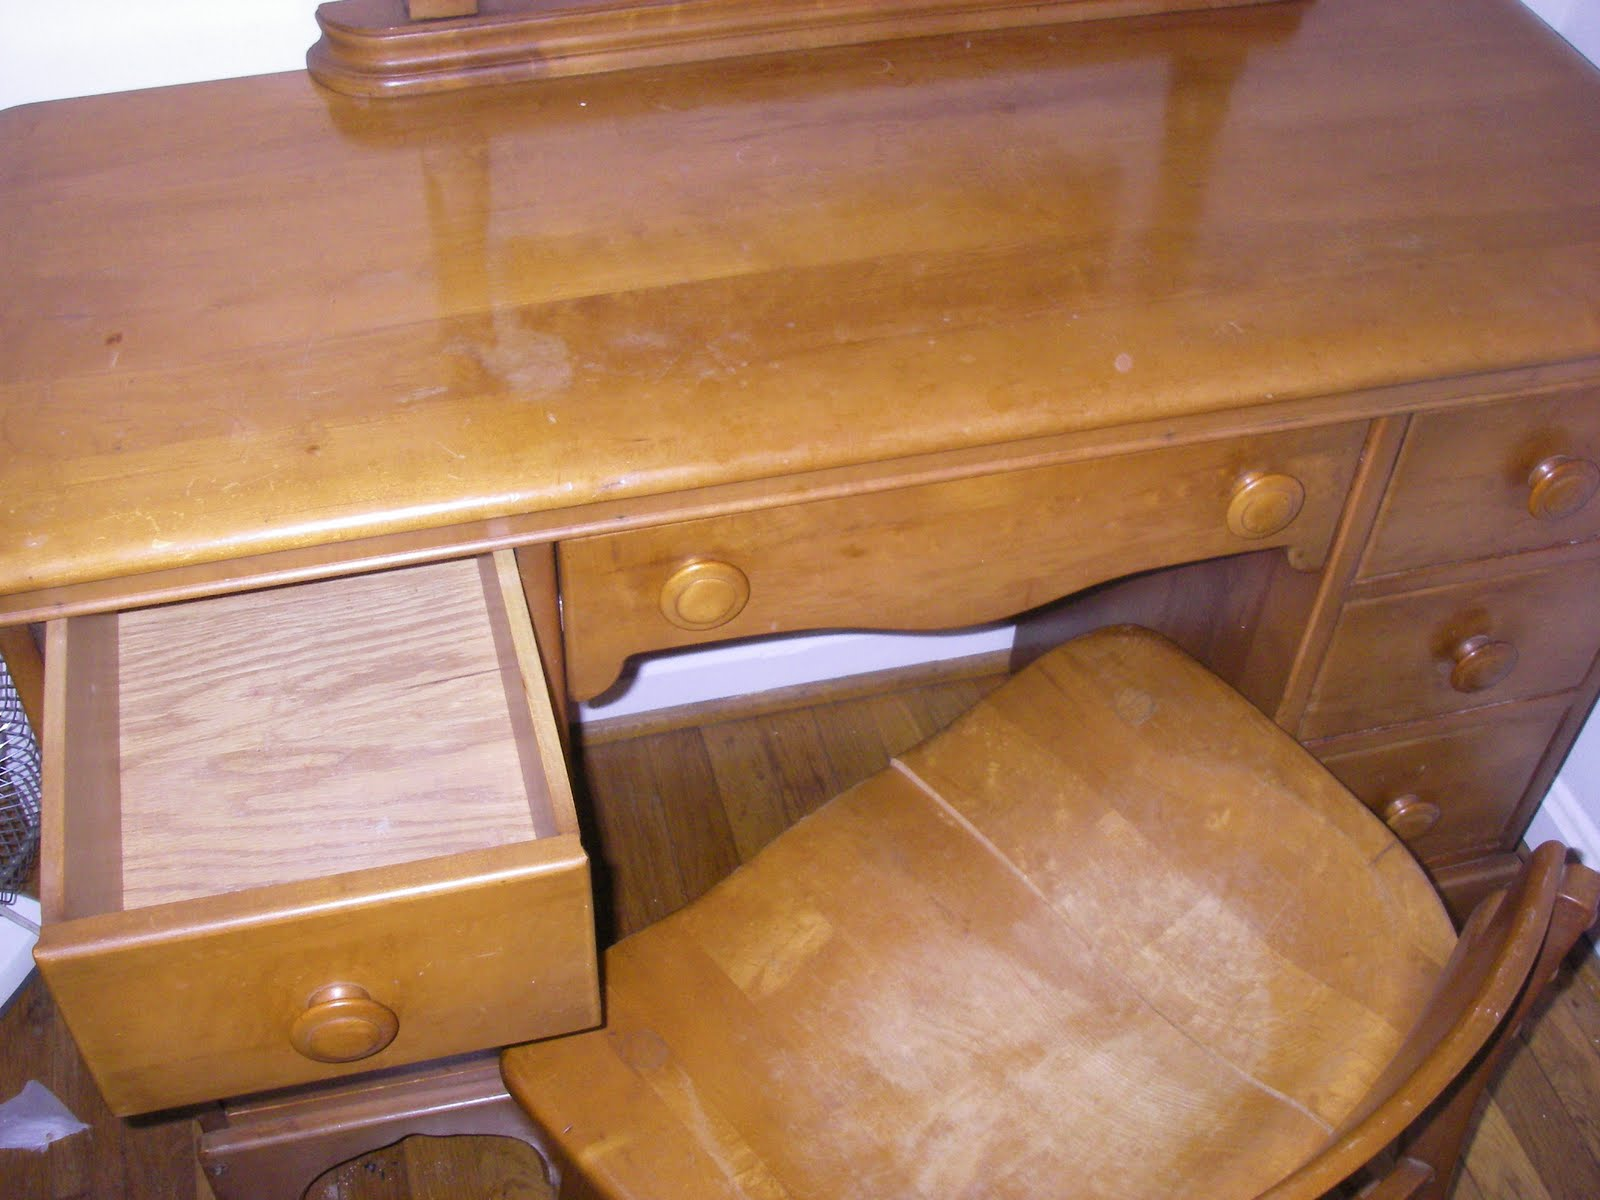 Yard sale furniture estate sale vanity maple 1950s for Furniture yard sale